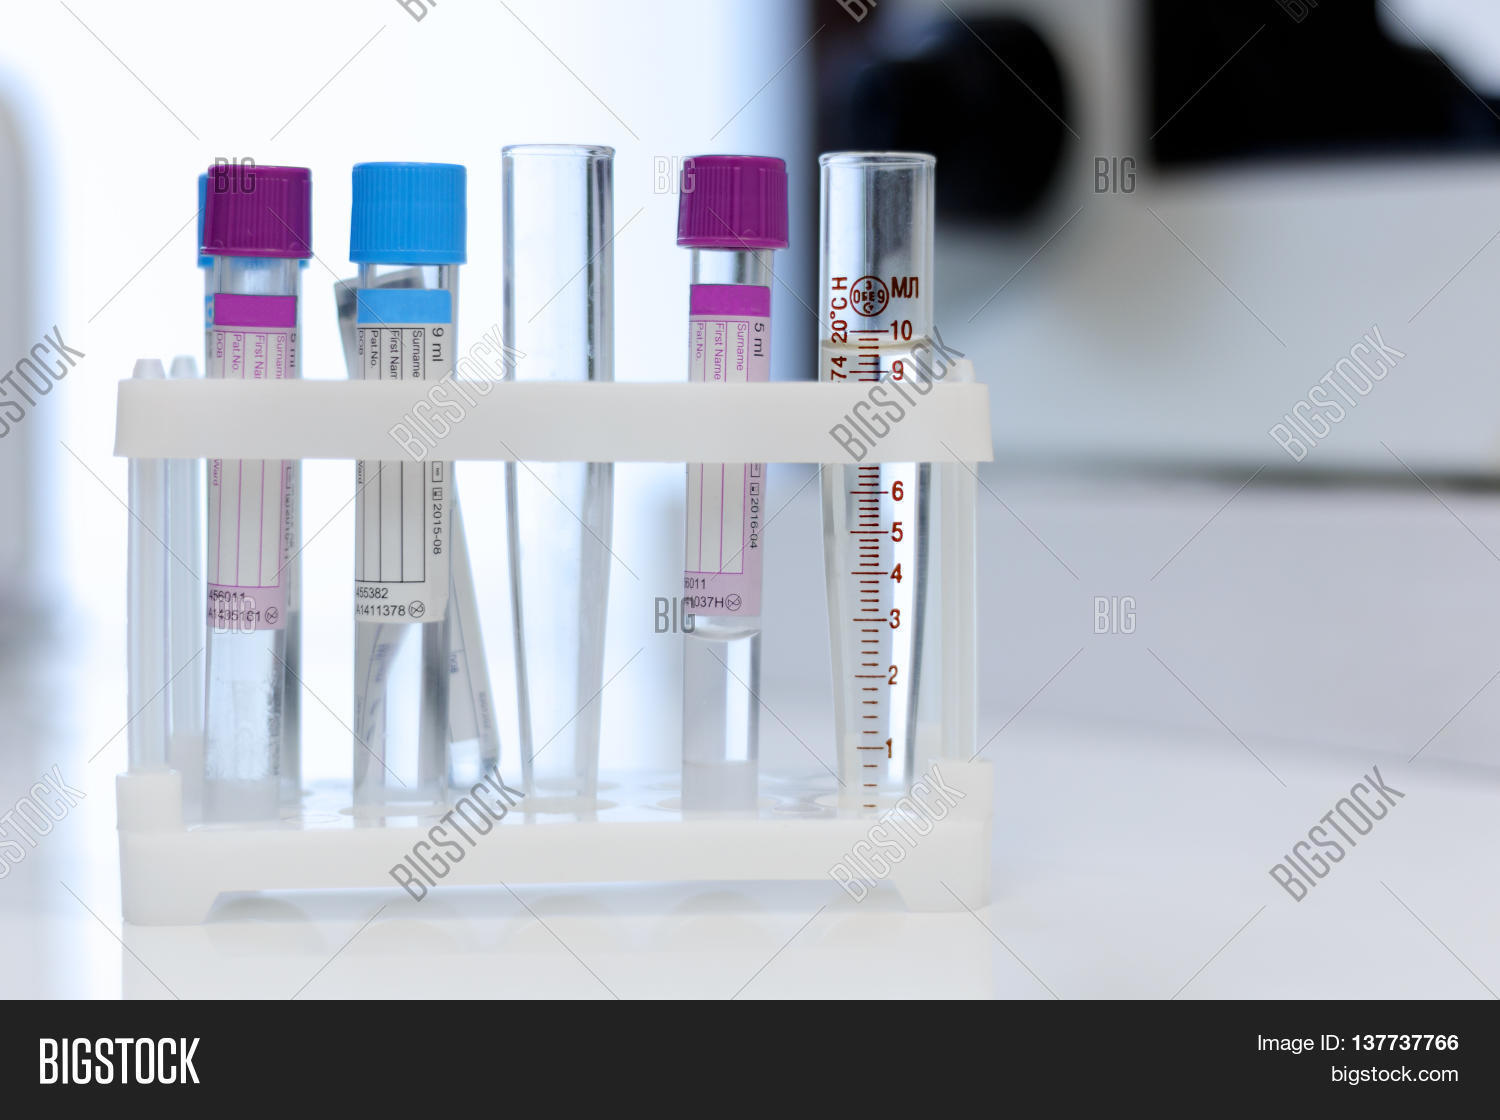 test,tube,lab,medical,clinical,label,dna,plasma,scientist,tray,serum,appliances,tool,biotechnology,analysis,rotate,technology,medicine,equipment,shake,biology,instrument,health,device,manipulation,healthcare,experiment,sample,laboratory,chemical,scientific,blood,bank,research,place,hospital,care,science,biochemistry,biomedical,container,pharmacy